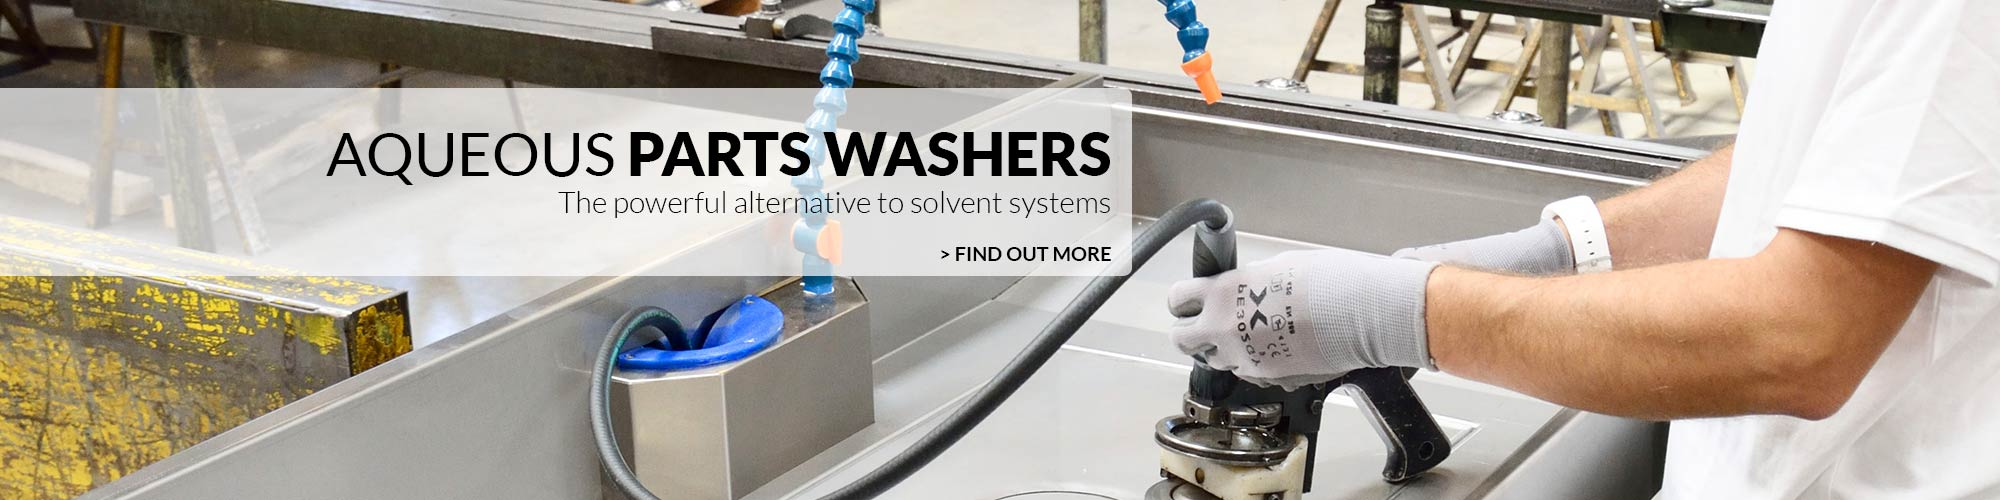 Solvent free parts washers